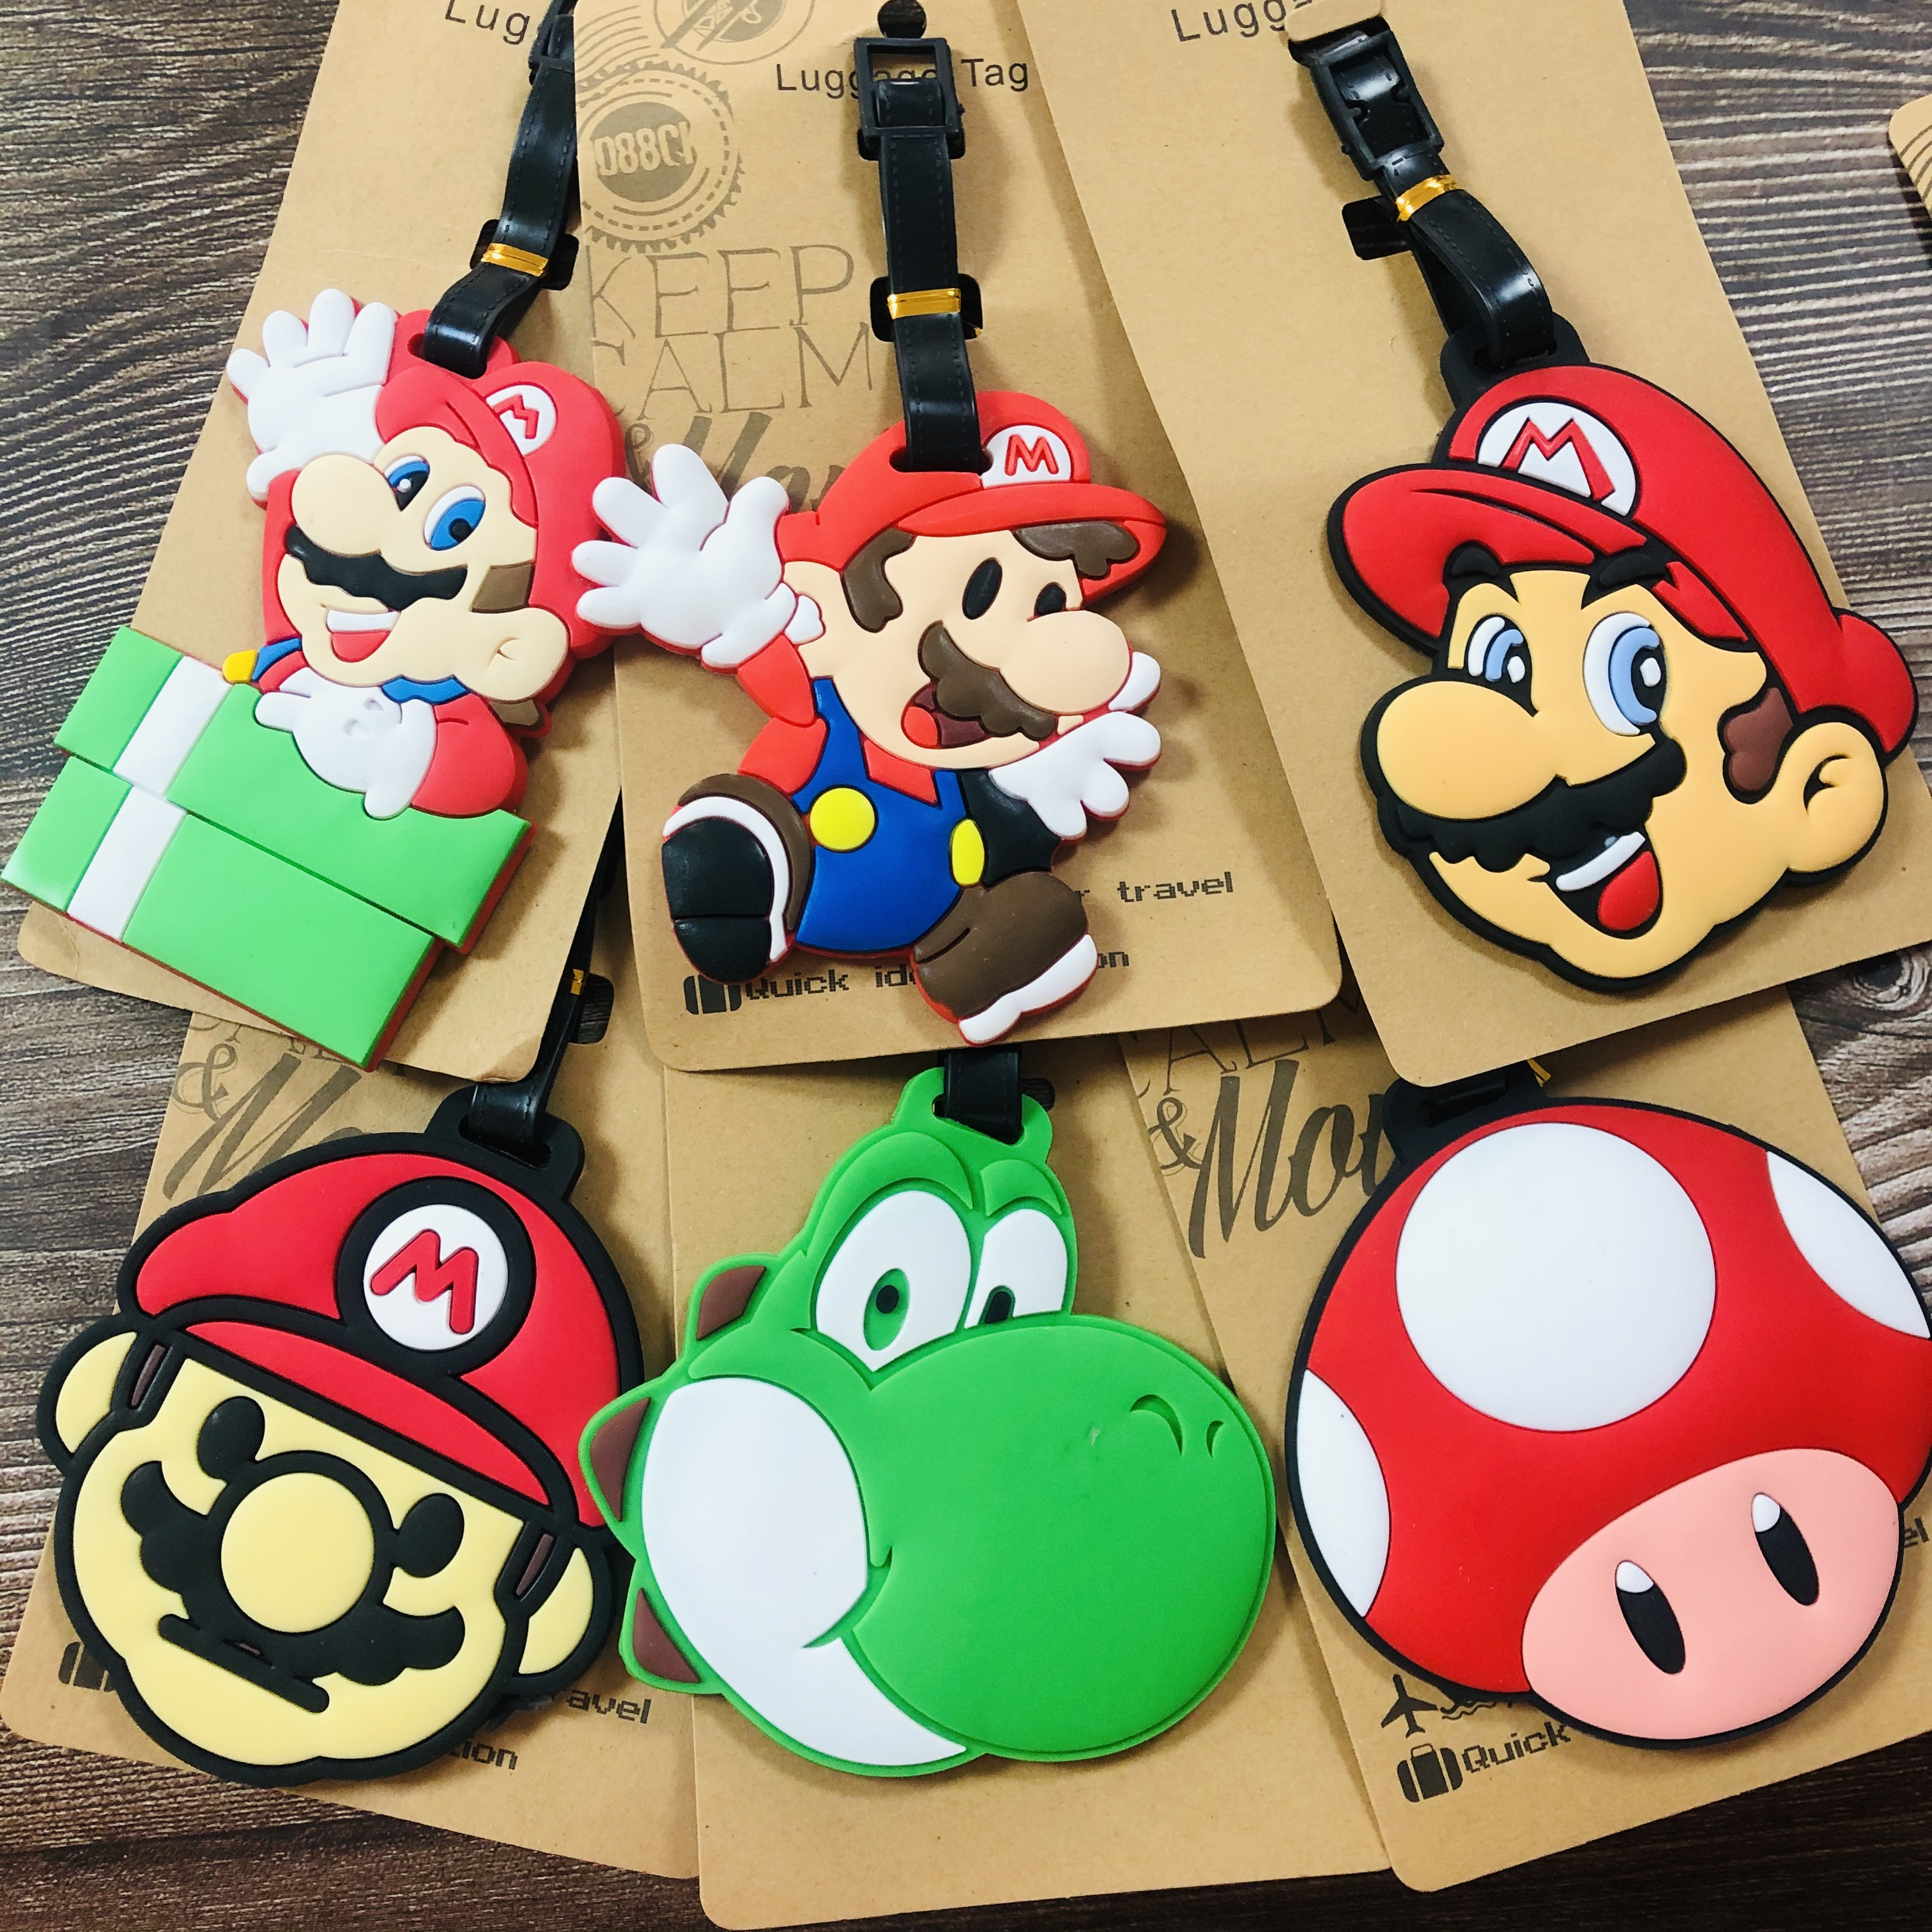 IVYYE 1PCS Super Mario Bros Anime Luggage TagTravel Accessories Suitcase ID Address Portable Tags Holder Baggage Labels New